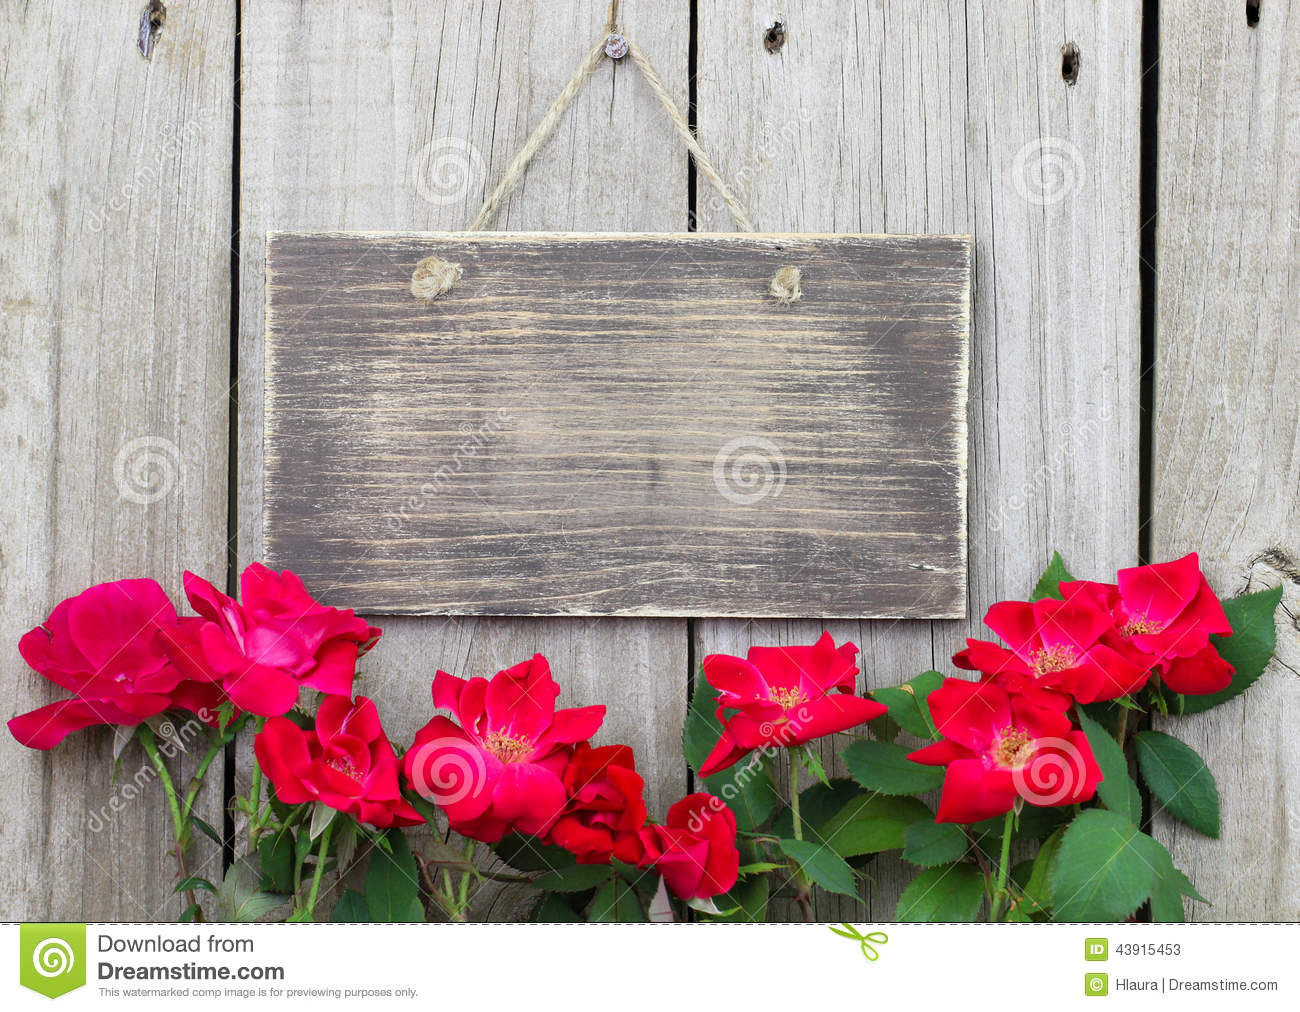 Flowers Bordering Blank Rustic Wooden Sign Hanging On